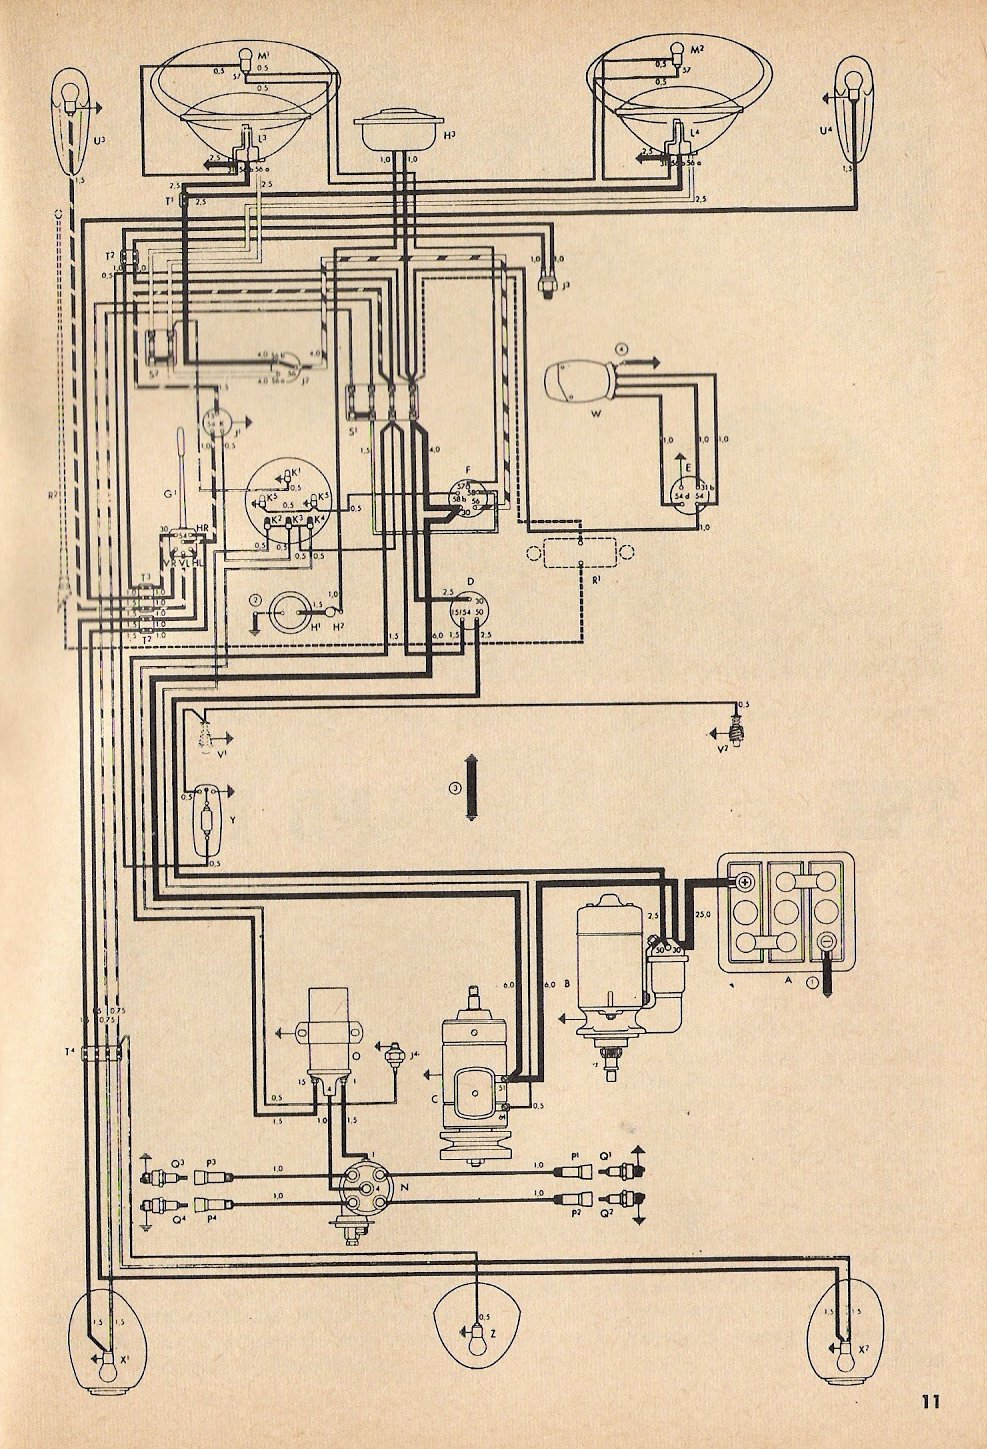 hight resolution of 1958 vw wiring diagram schema wiring diagram1968 vw wiring schematic 14